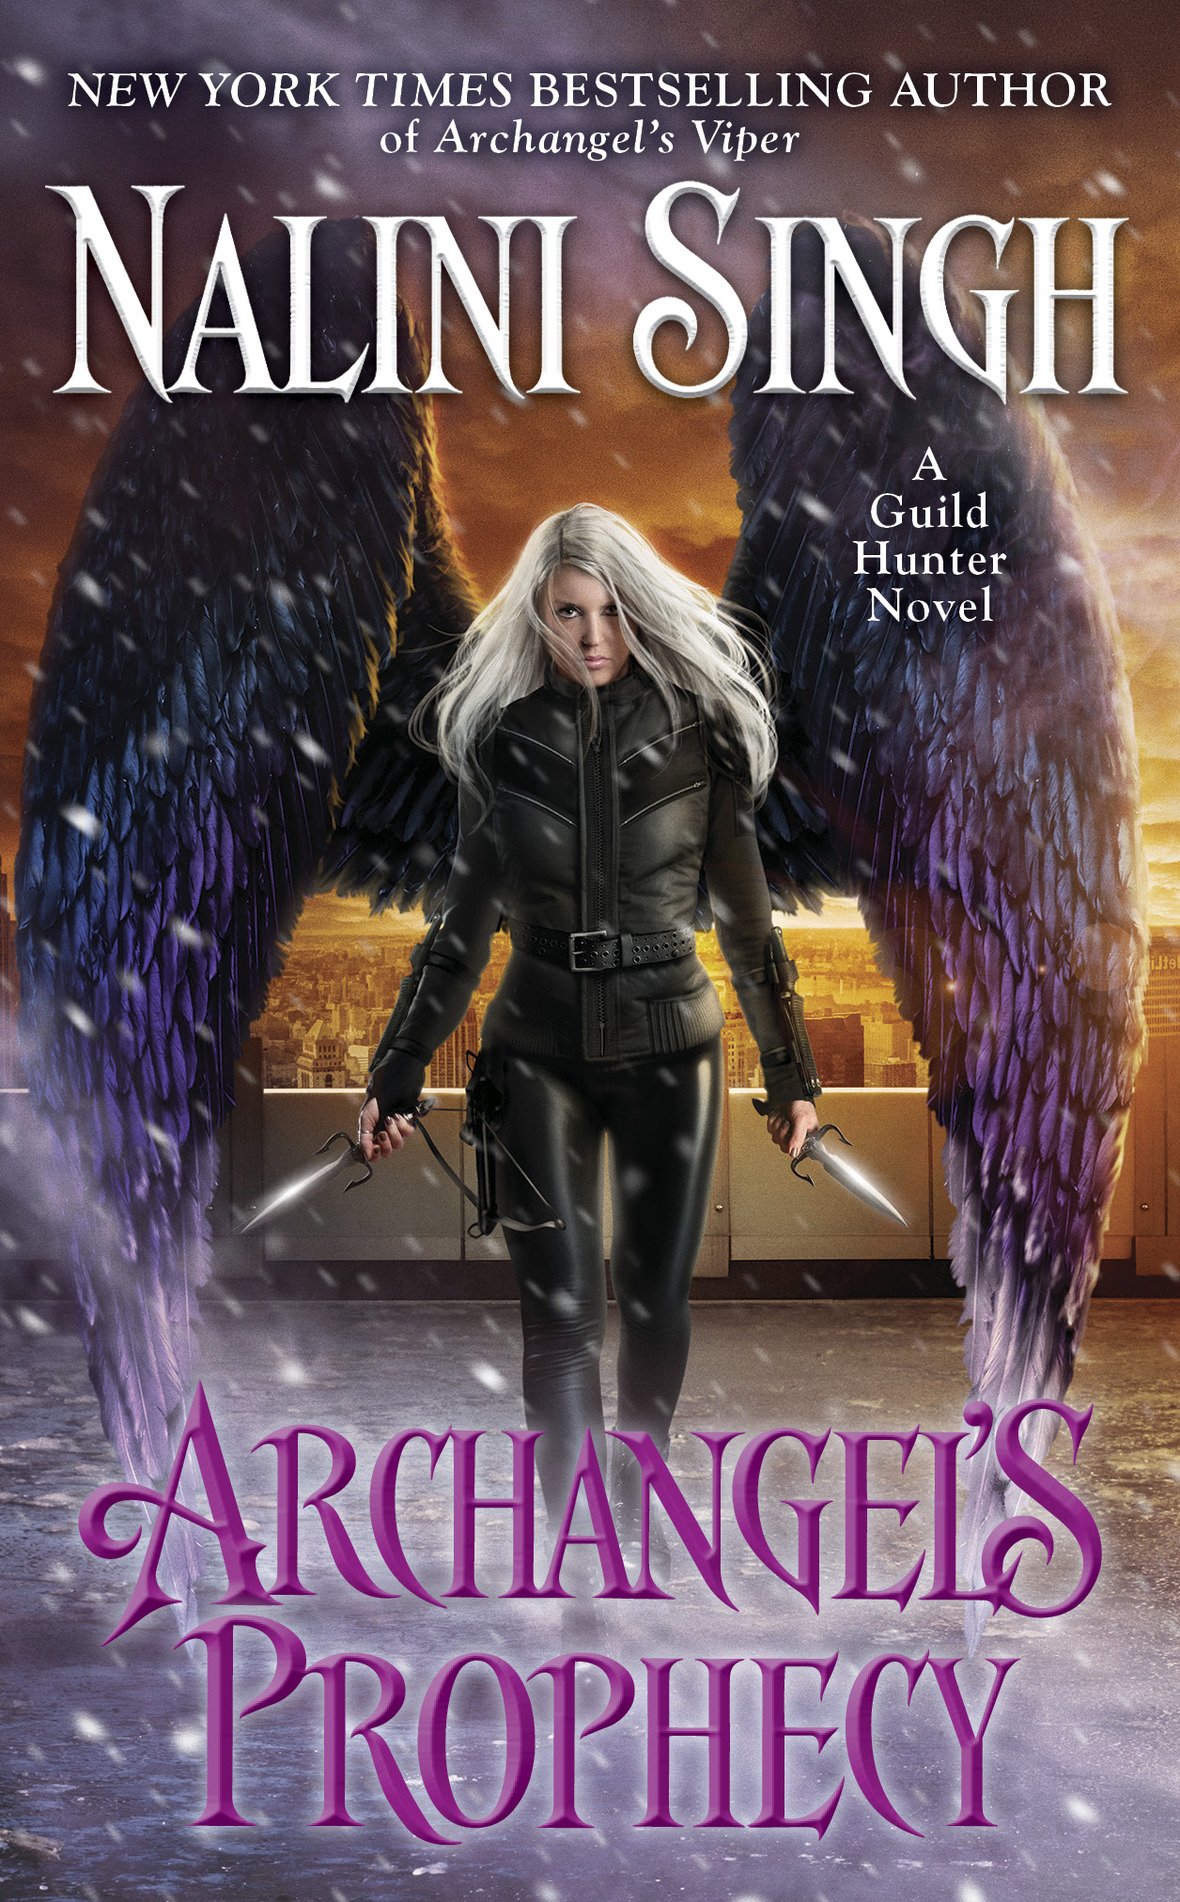 USA Archangels Prophecy Cover - Copy